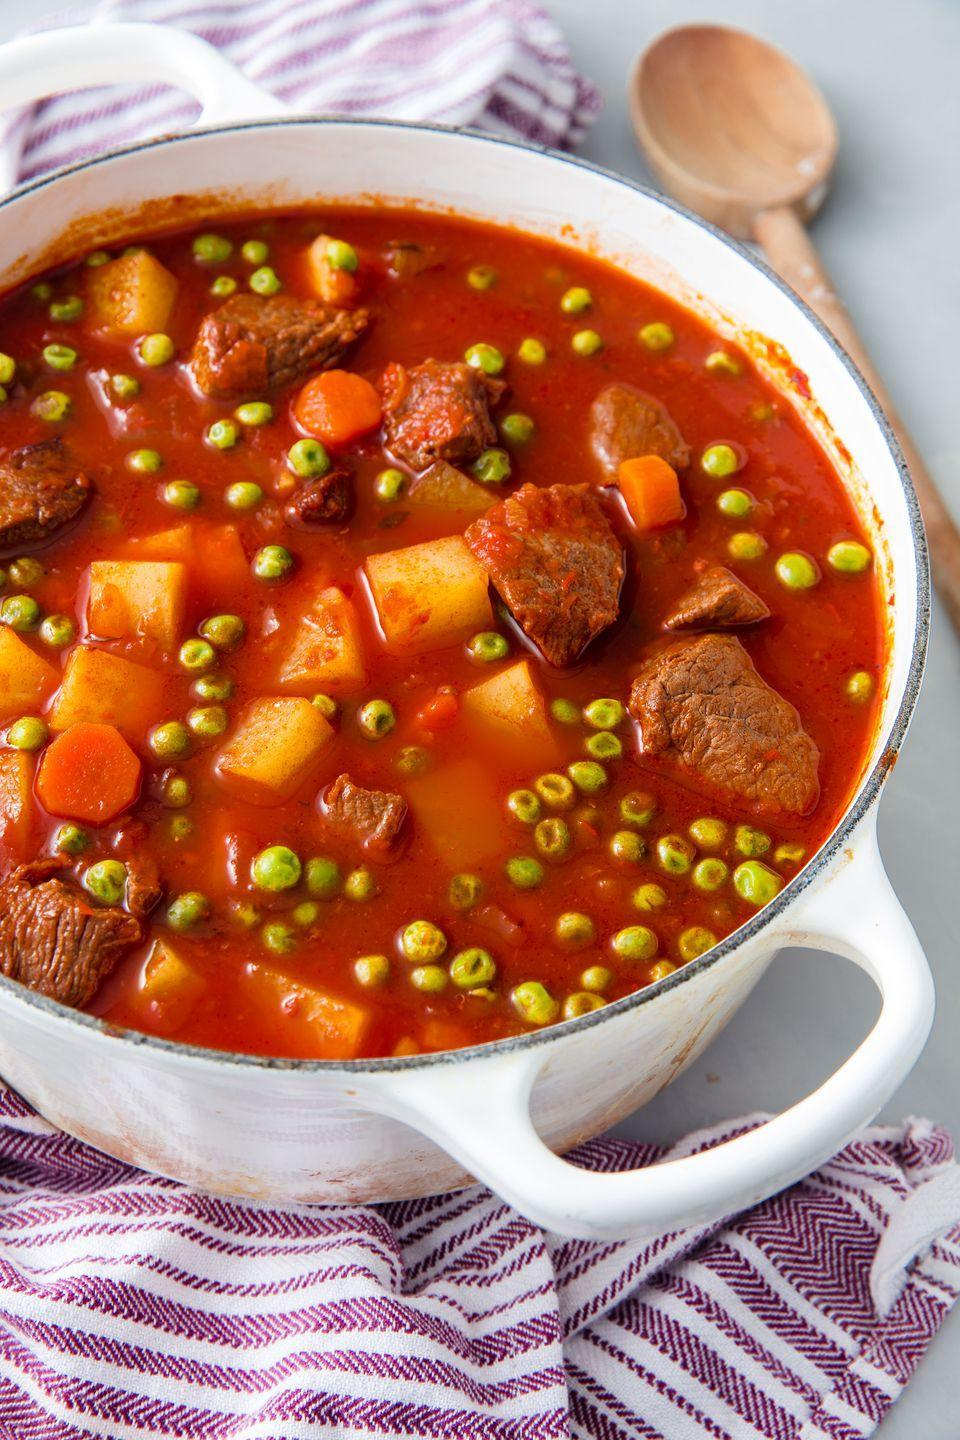 "<p>Full and hearty.</p><p>Get the recipe from <a href=""https://www.delish.com/cooking/recipe-ideas/a21565547/vegetable-beef-stew-recipe/"" rel=""nofollow noopener"" target=""_blank"" data-ylk=""slk:Delish."" class=""link rapid-noclick-resp"">Delish.</a></p><p><a class=""link rapid-noclick-resp"" href=""https://go.redirectingat.com?id=74968X1596630&url=http%3A%2F%2Fwww.booksamillion.com%2Fp%2FDelish%2FEditors-Delish%2F9781328498861%3FAID%3D12534396%26PID%3D7689440%26SID%3D74968X1525073Xd3f4558dac2bf3f14278e5e58fd08bb1&sref=https%3A%2F%2Fwww.delish.com%2Fcooking%2Fg1829%2Fwinter-soup%2F"" rel=""nofollow noopener"" target=""_blank"" data-ylk=""slk:BUY NOW"">BUY NOW</a> <strong><em>Delish cookbook, booksamillion.com</em></strong></p>"